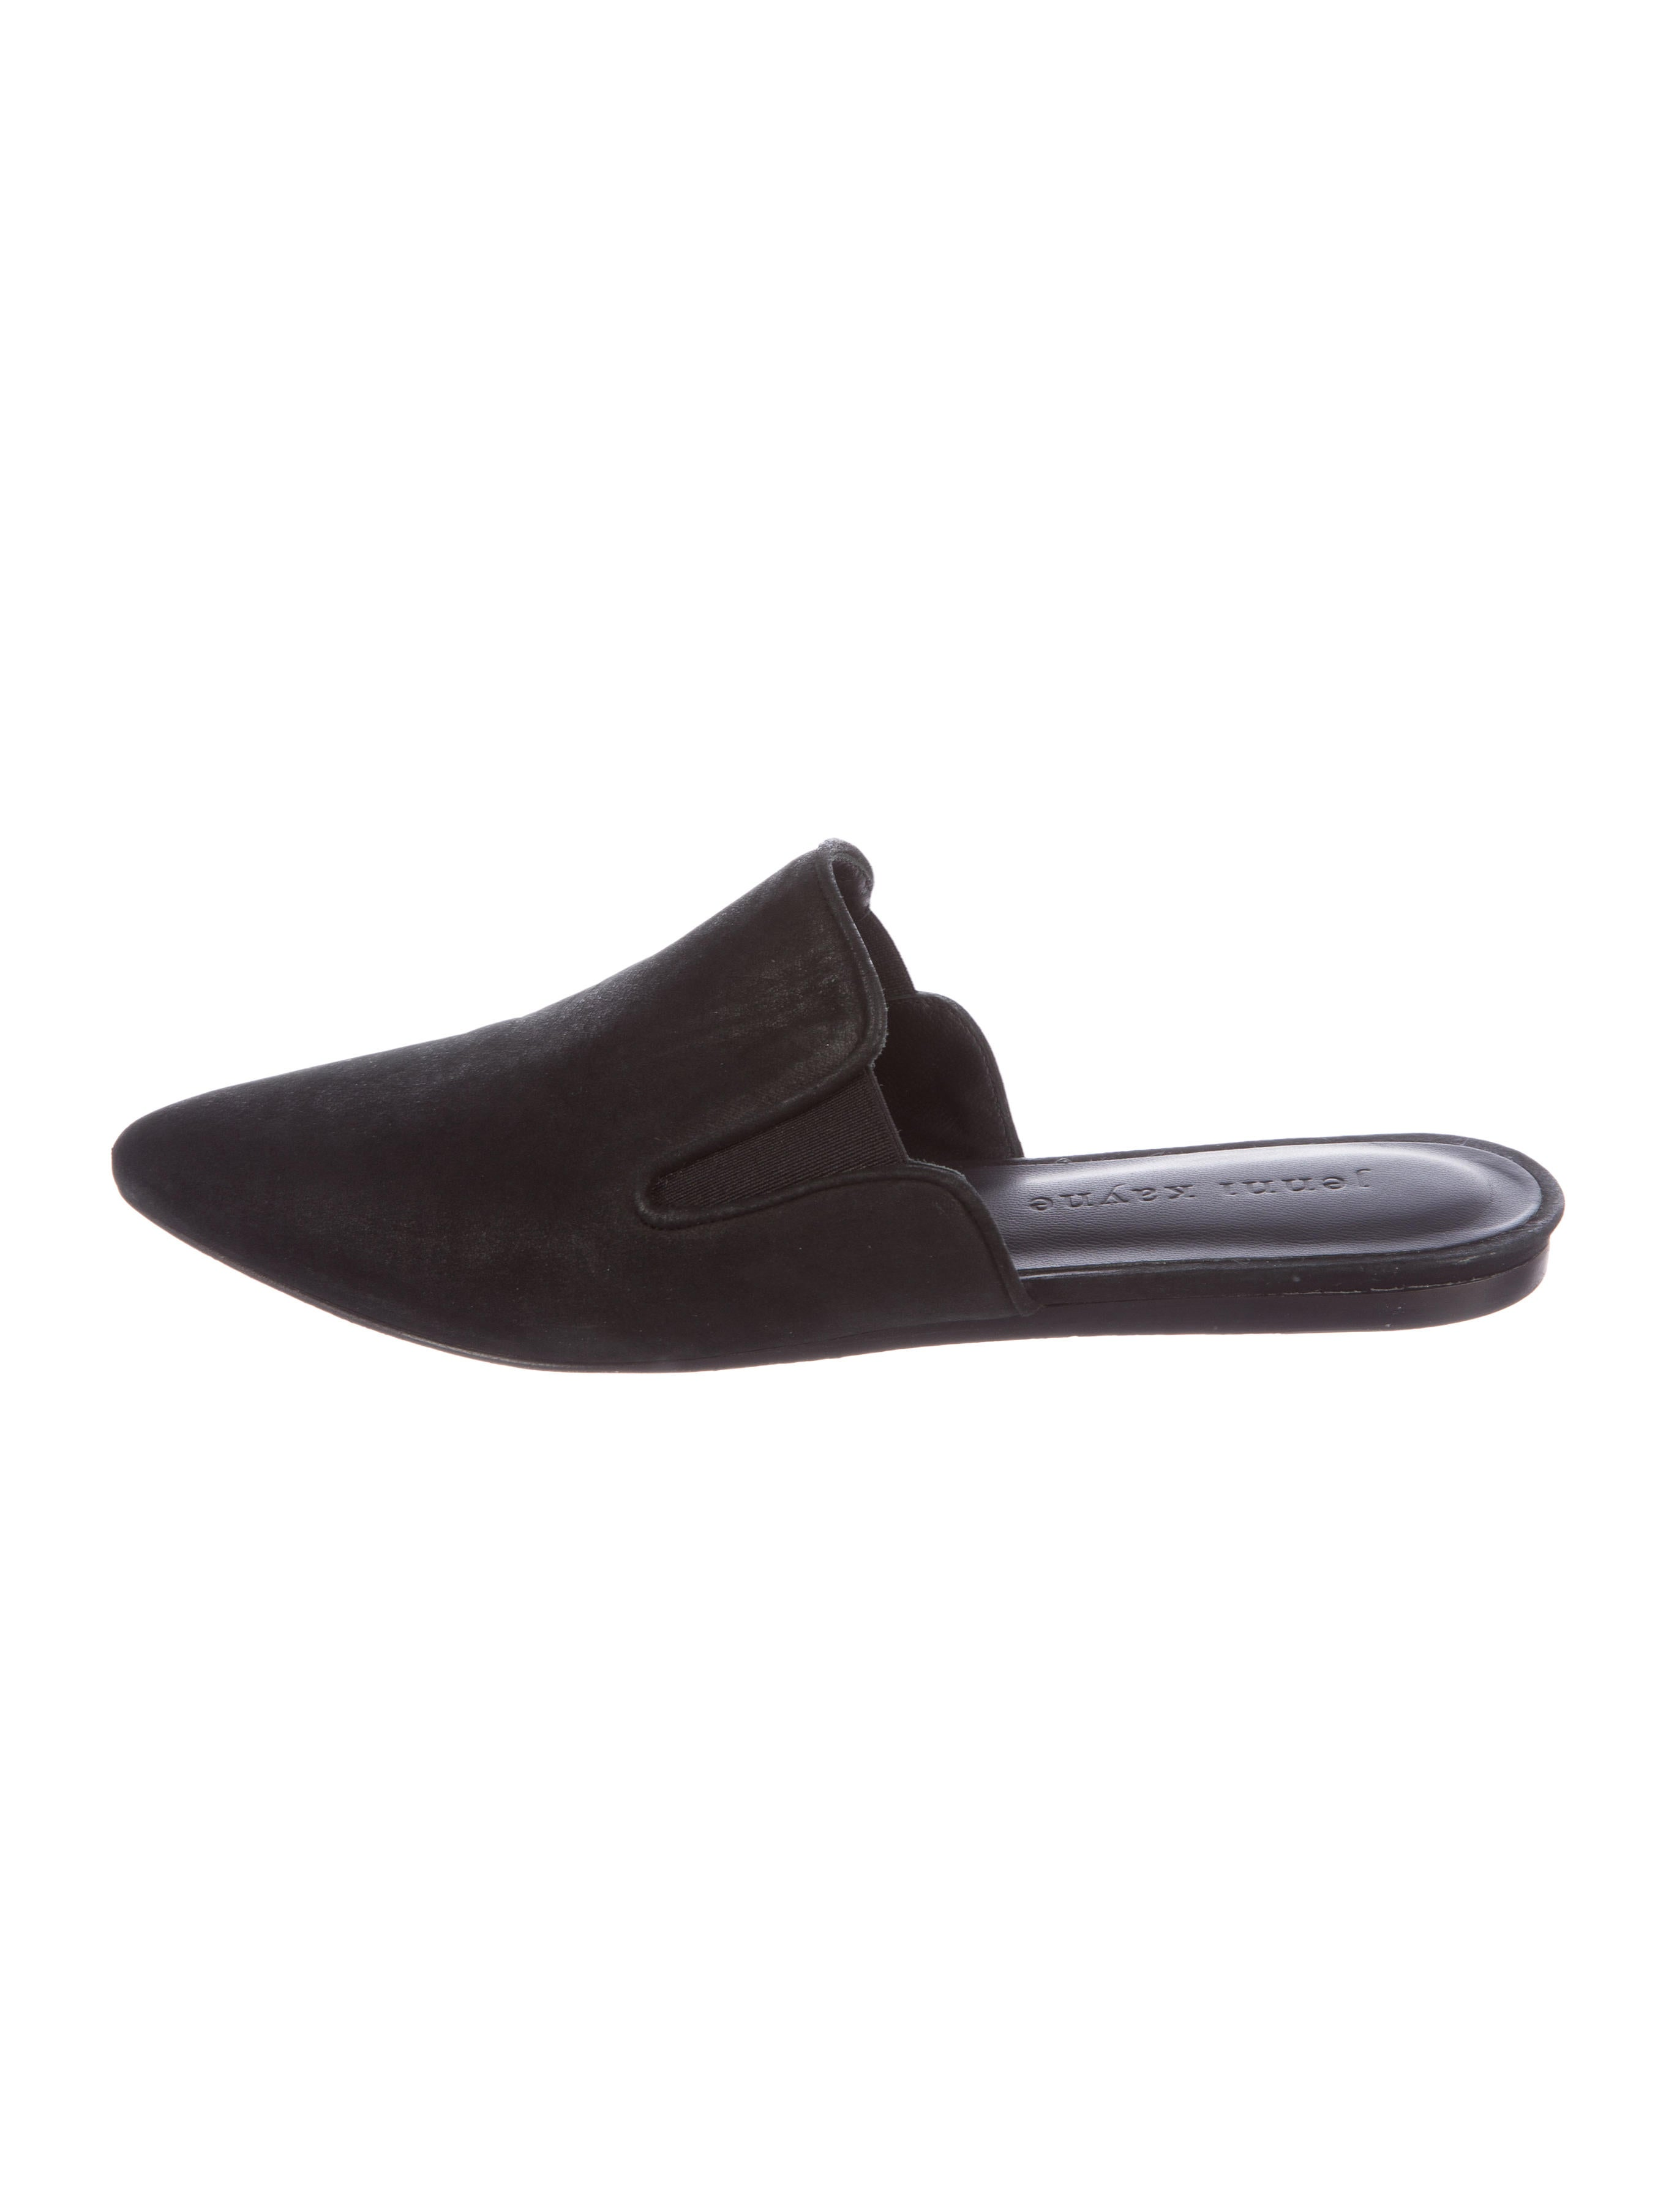 cheap price Jenni Kayne Nubuck Pointed-Toe Mules outlet locations online outlet good selling S3oQA